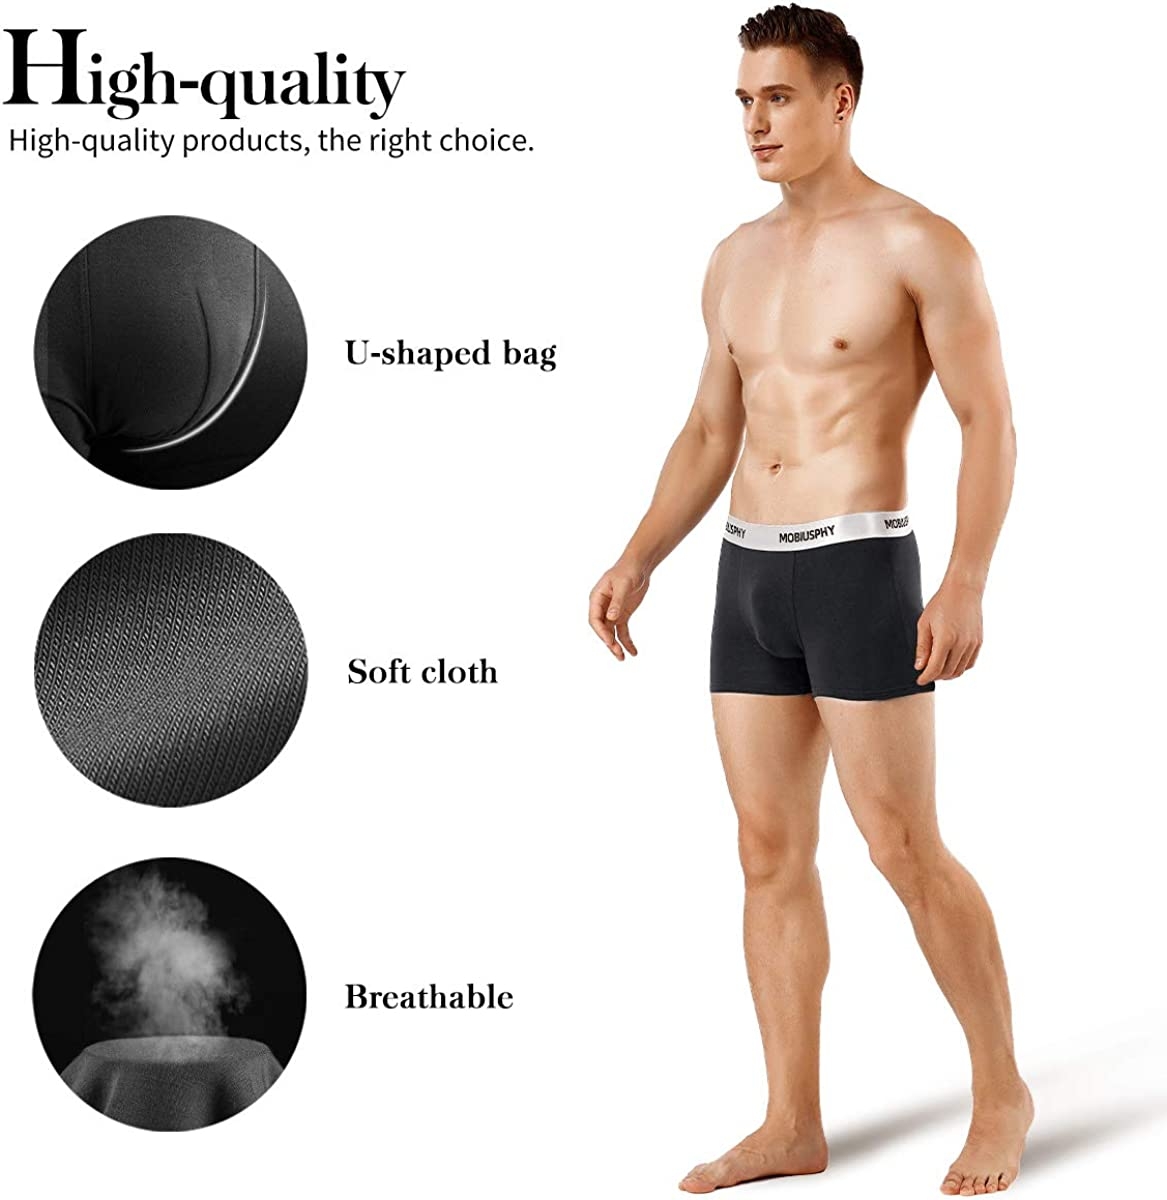 MOBIUSPHY Mens Boxer Shorts Cotton Underwear for Men Briefs Fitted Trunks Pack of 3 Black